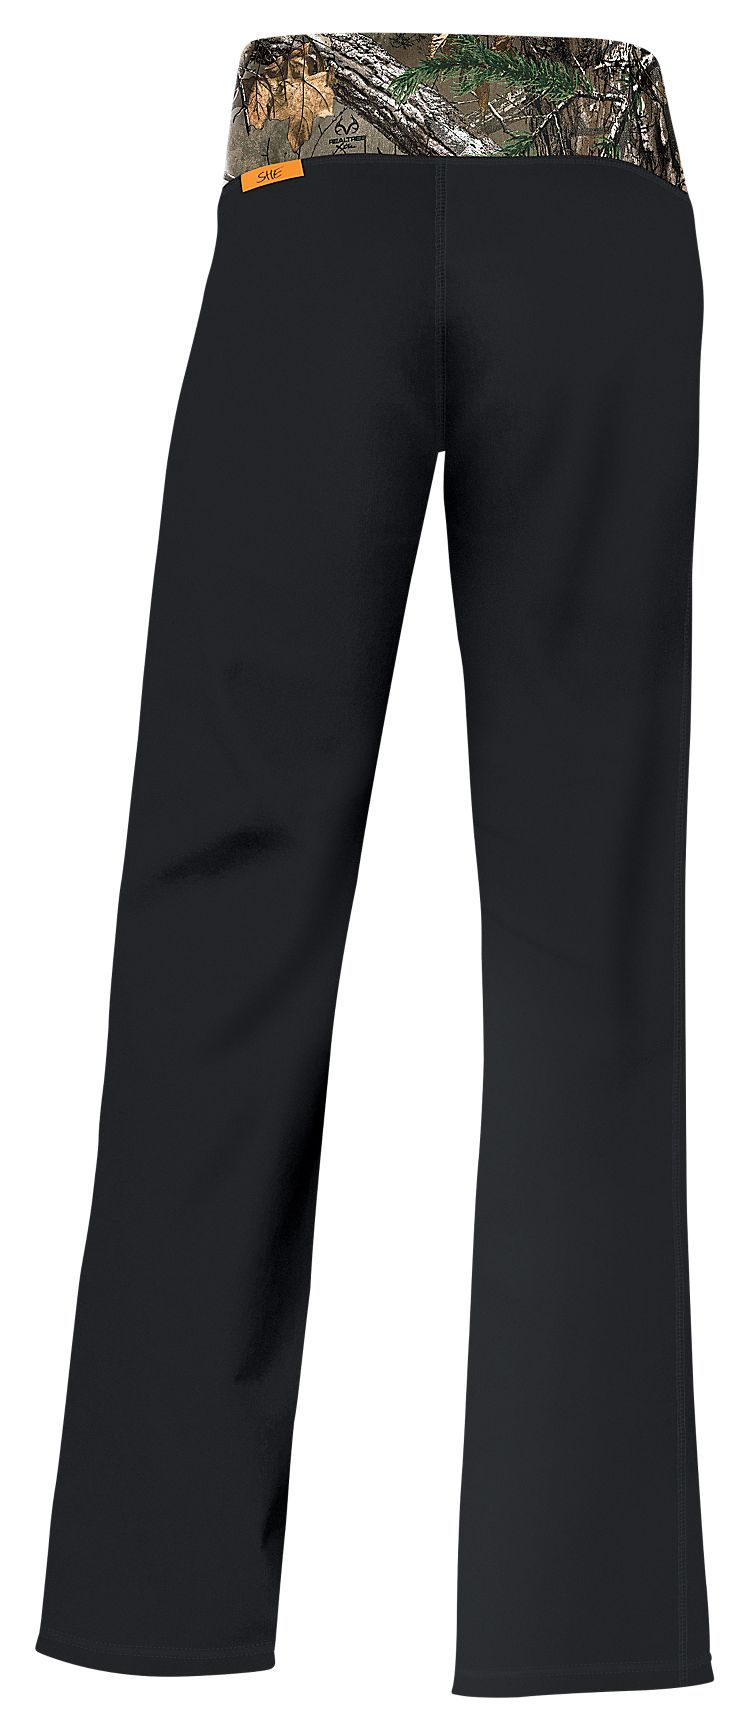 3563f2442b6a8 SHE® Outdoor Performance Pants for Ladies | Bass Pro Shops ...